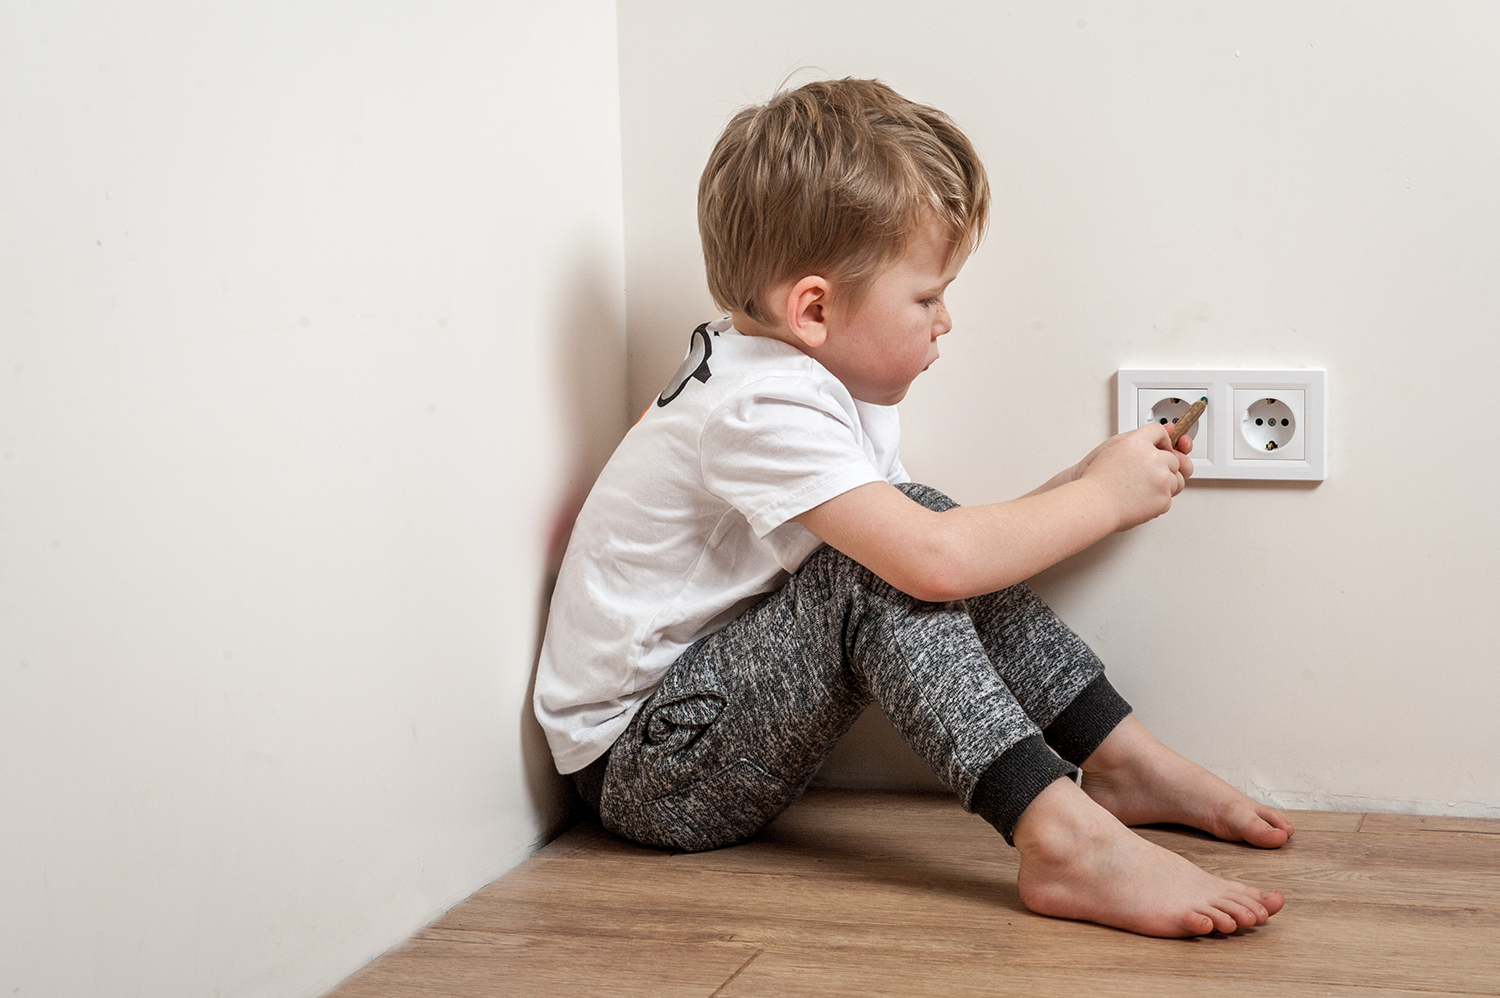 Kid sticking his finger in an outlet, a bad example of electrical safety.